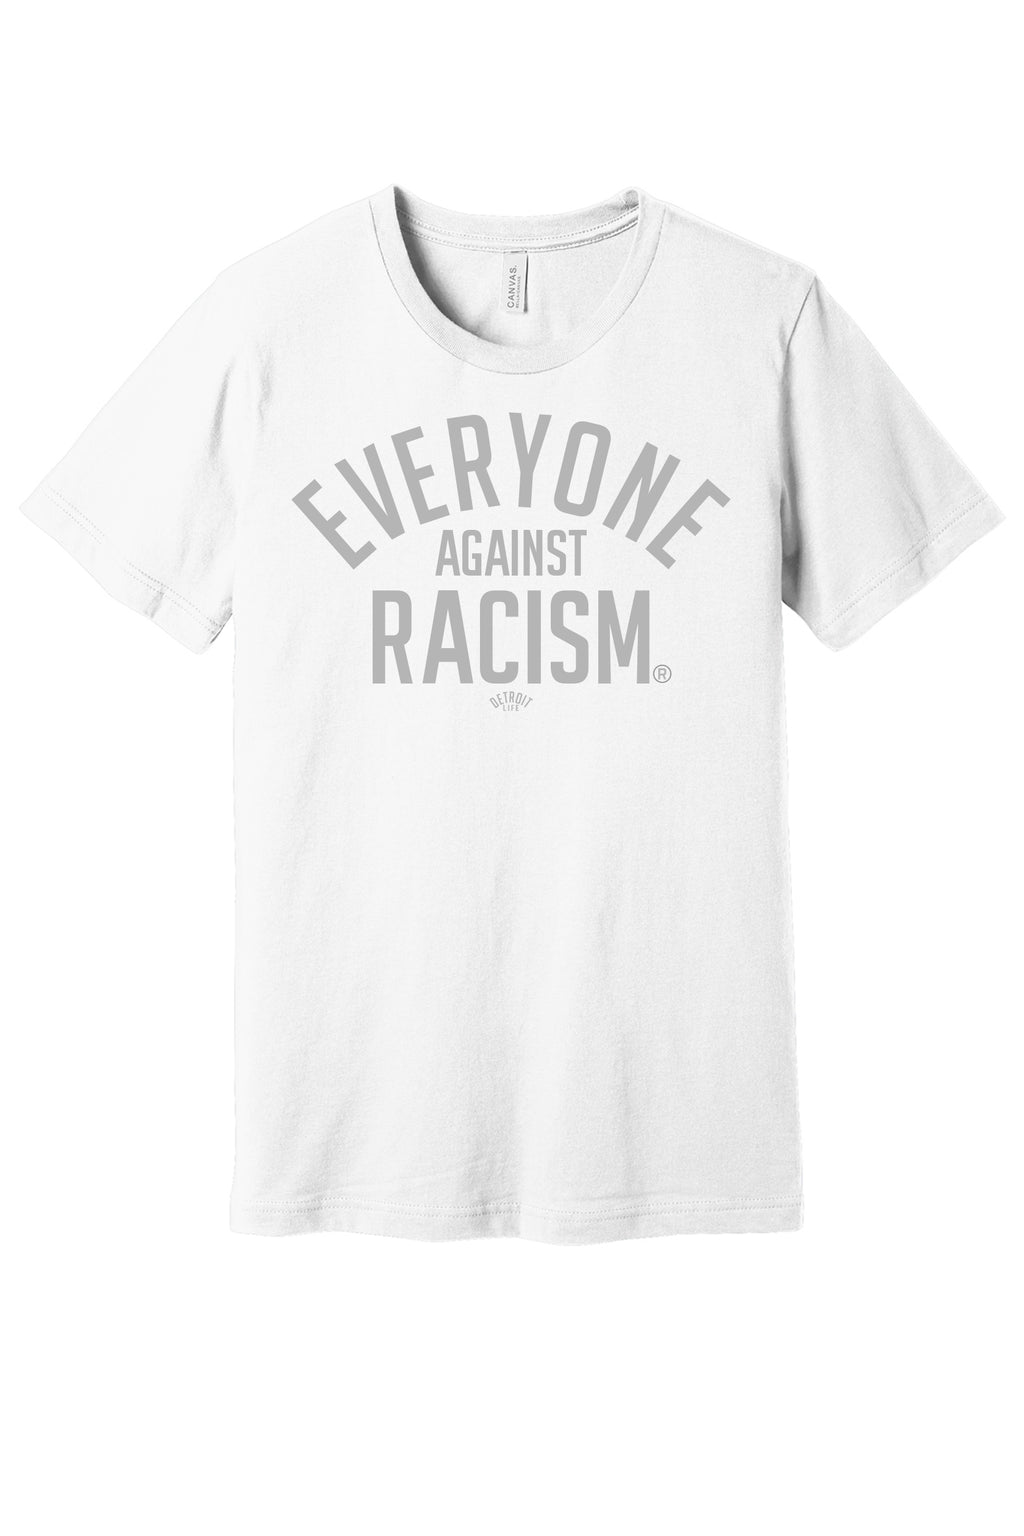 EVERYONE AGAINST RACISM T-SHIRT